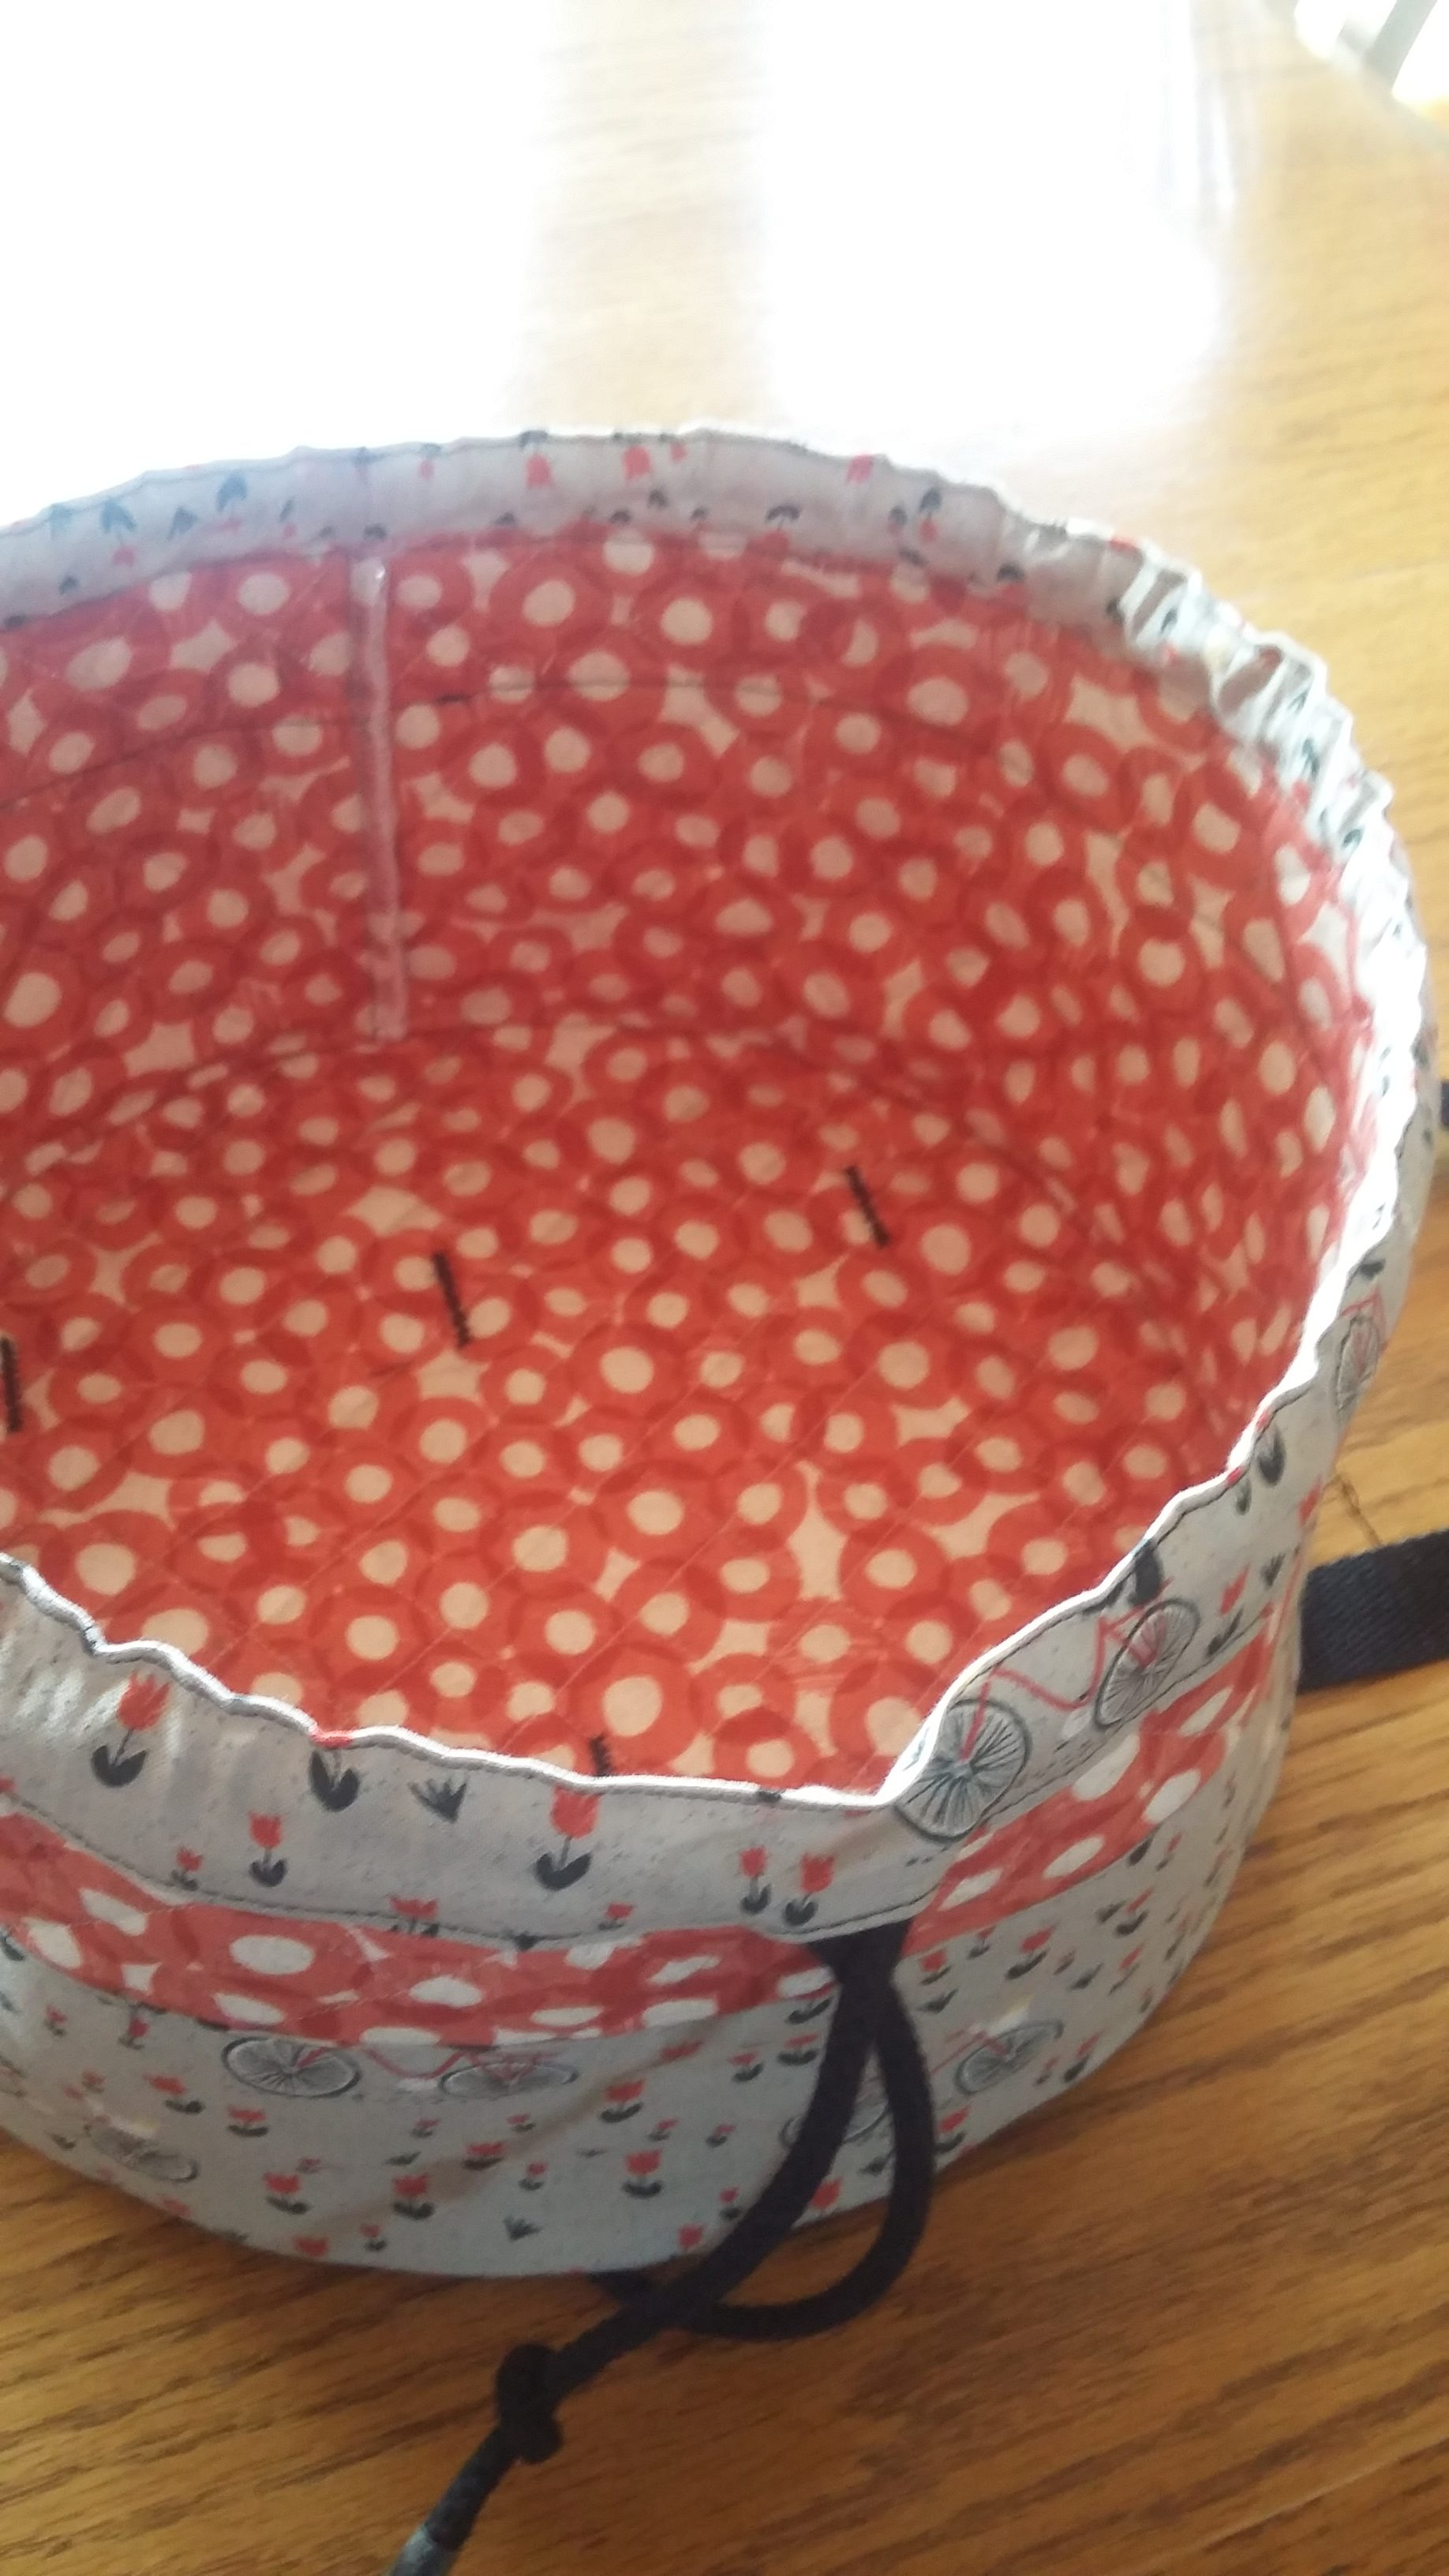 Round Insulated Casserole Carrier – Welcome to Kadydid Studio!